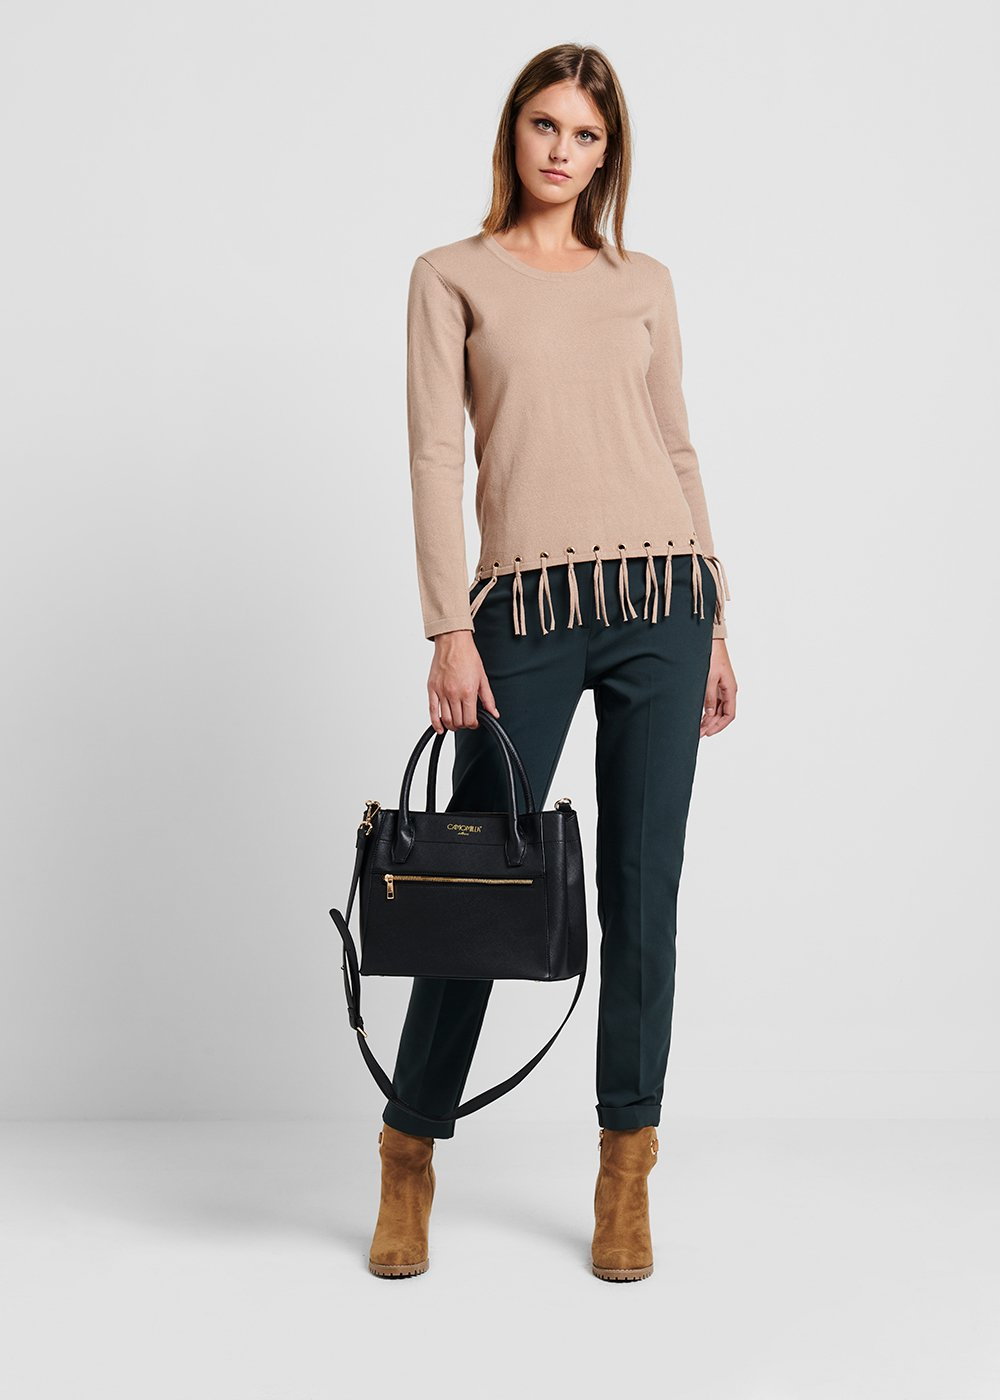 Brainy black bag - Black - Woman